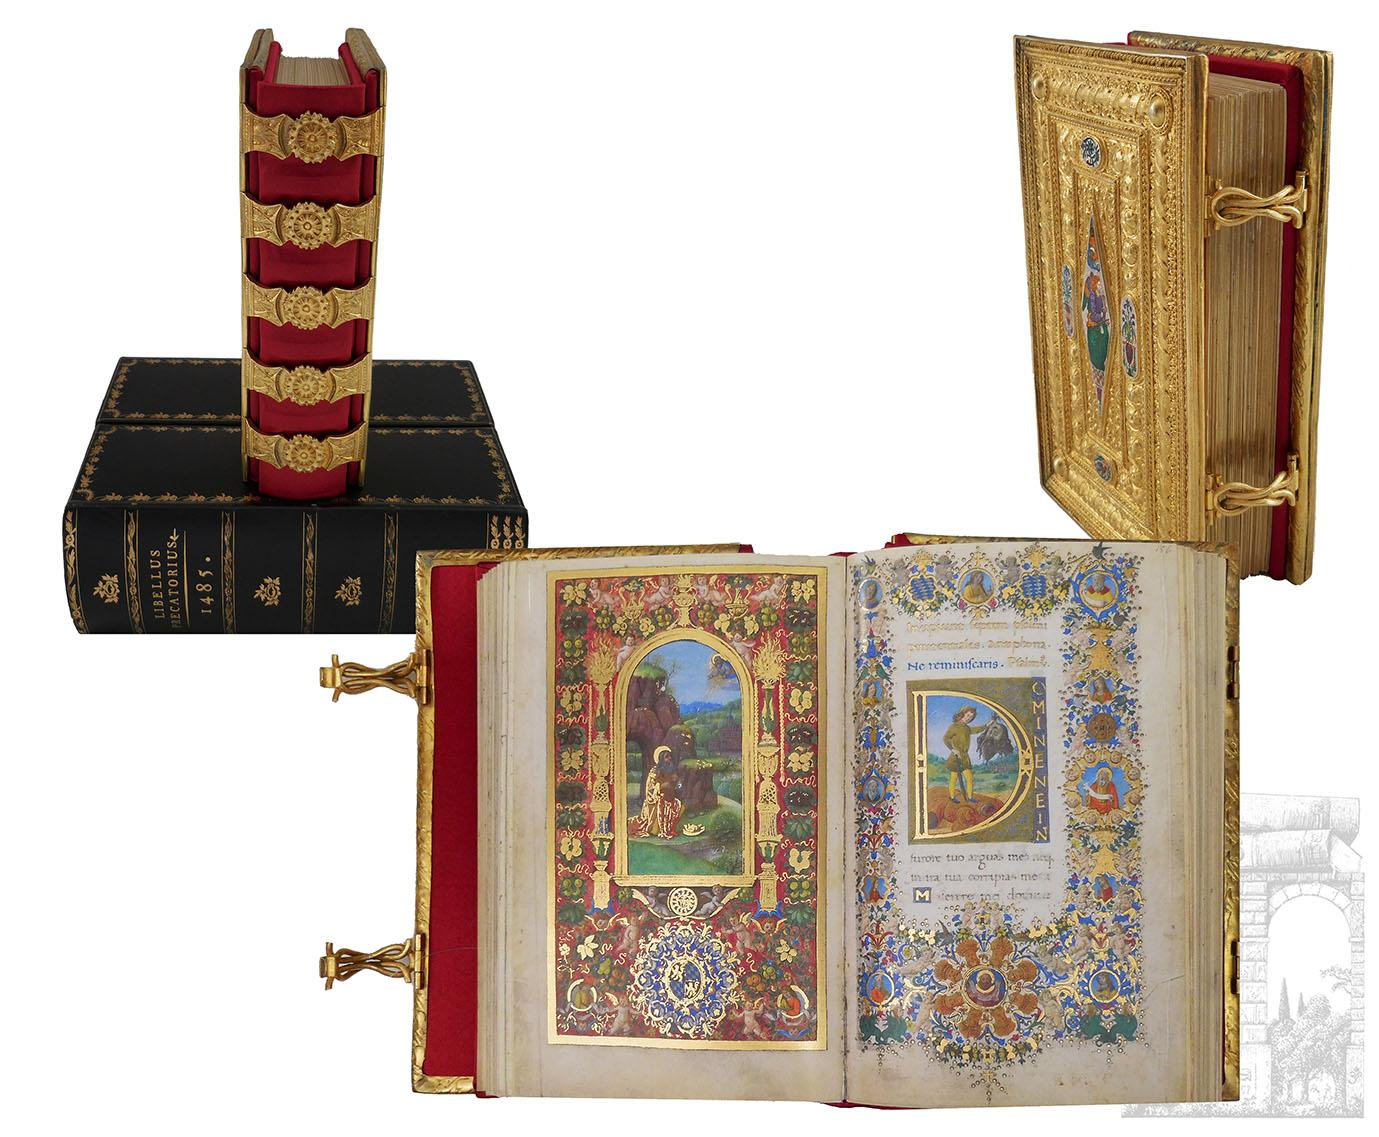 GEBETBUCH LORENZOS DE'' MEDICI - PRAYER BOOK: Vorzugsausgabe. Luxury edition: